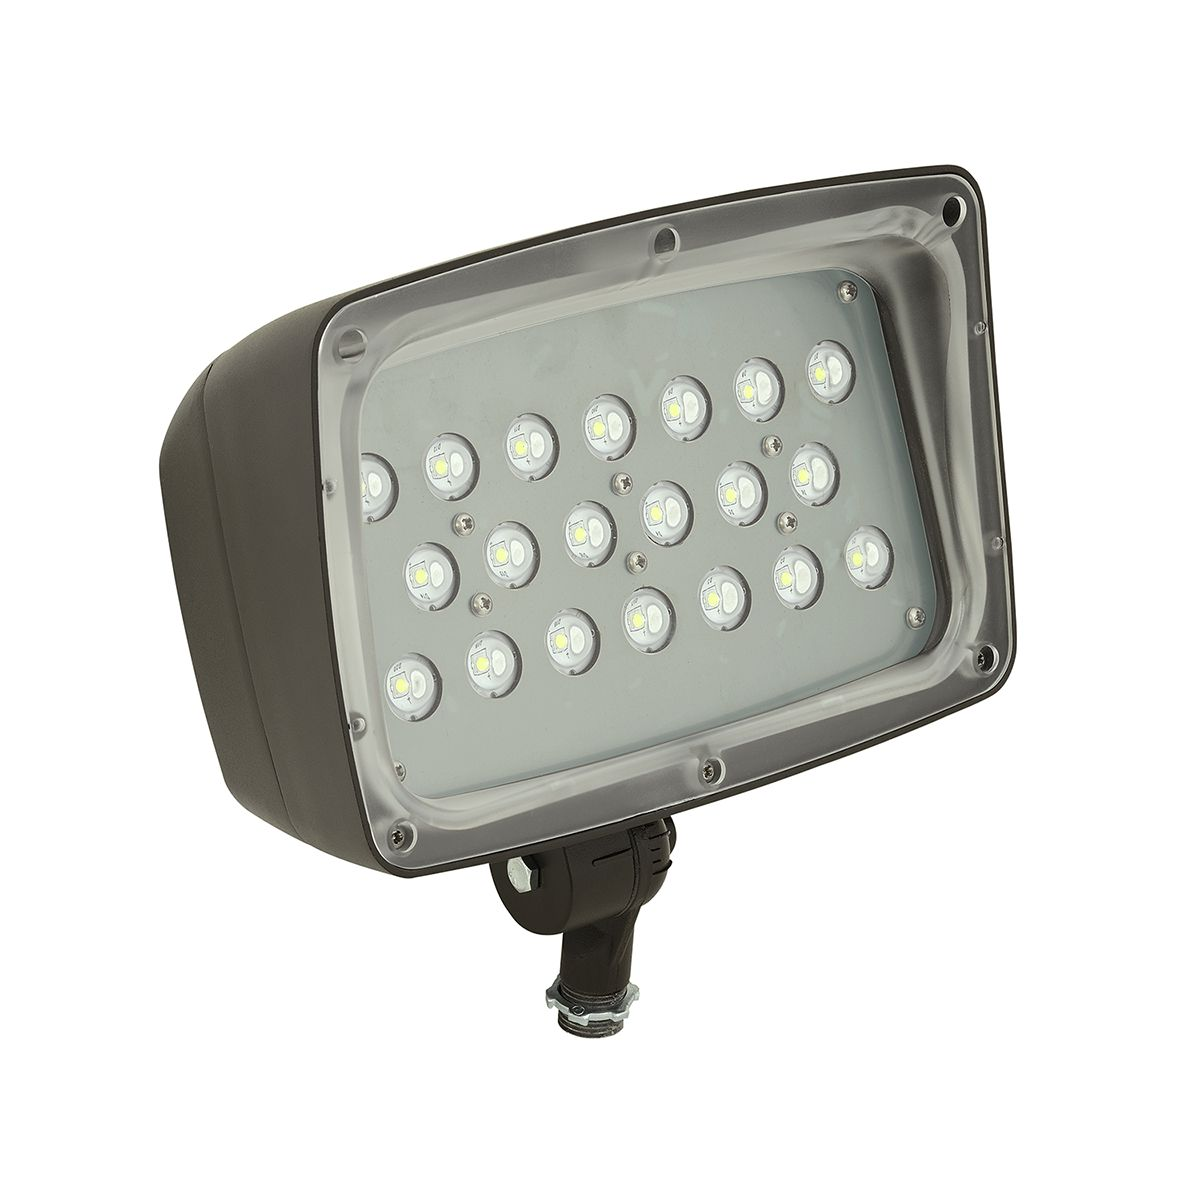 ARF Architectural Flood Solar LED Light Fixture